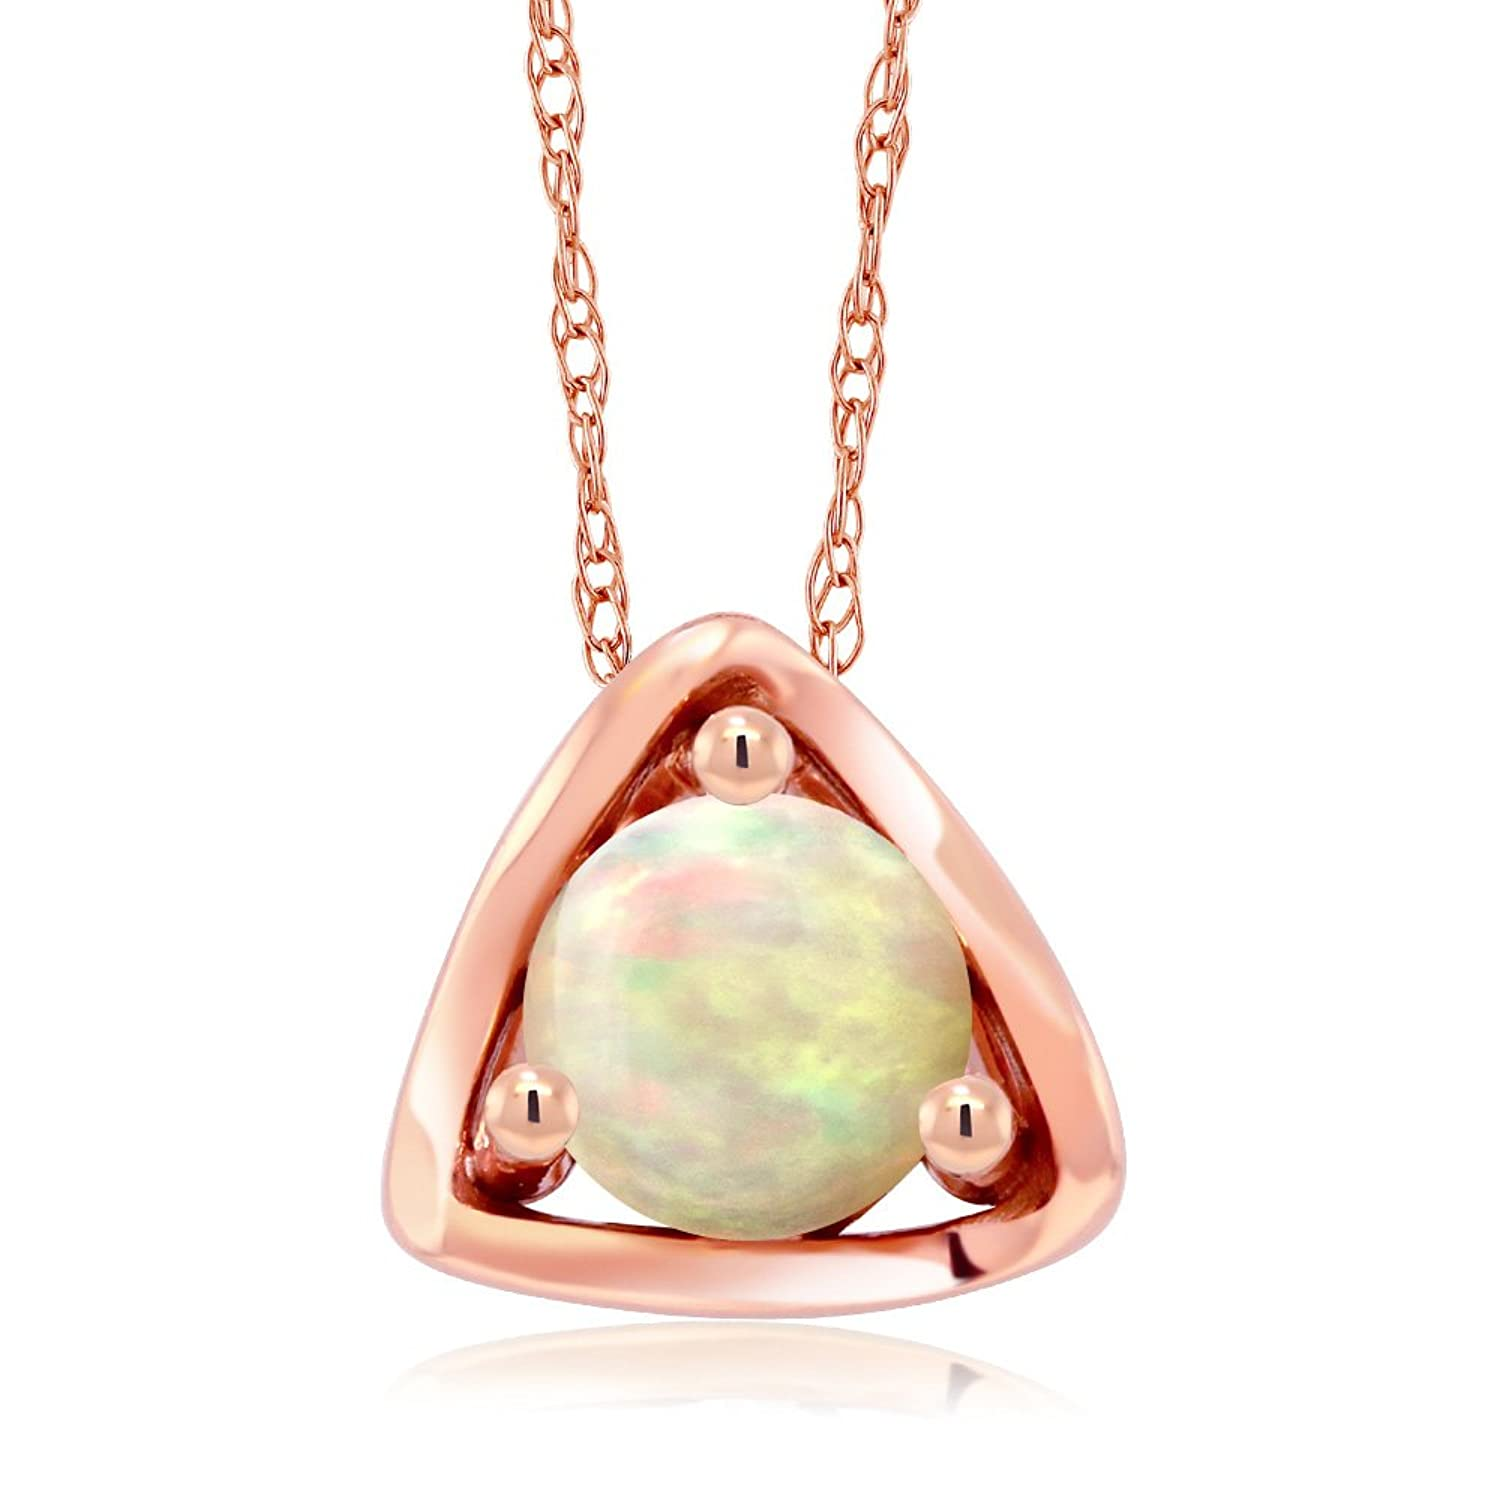 10K Rose Gold 0.50 Ct Round Cabochon White Ethiopian Opal Pendant Necklace with 18 Inch Chain